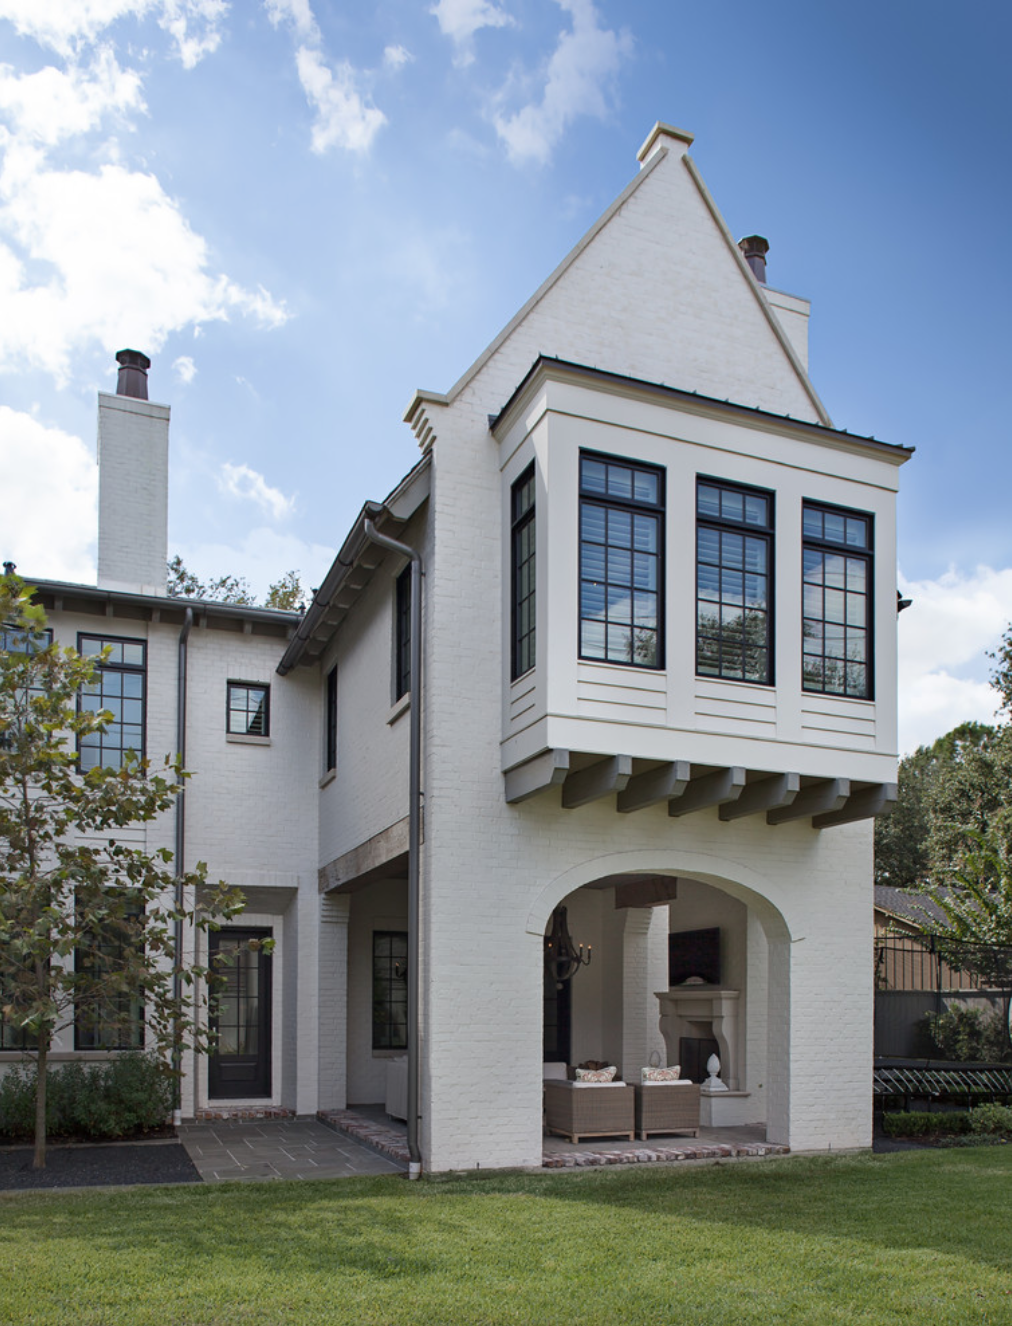 Modern House Exterior Design: Sherwin Williams - Aesthetic White